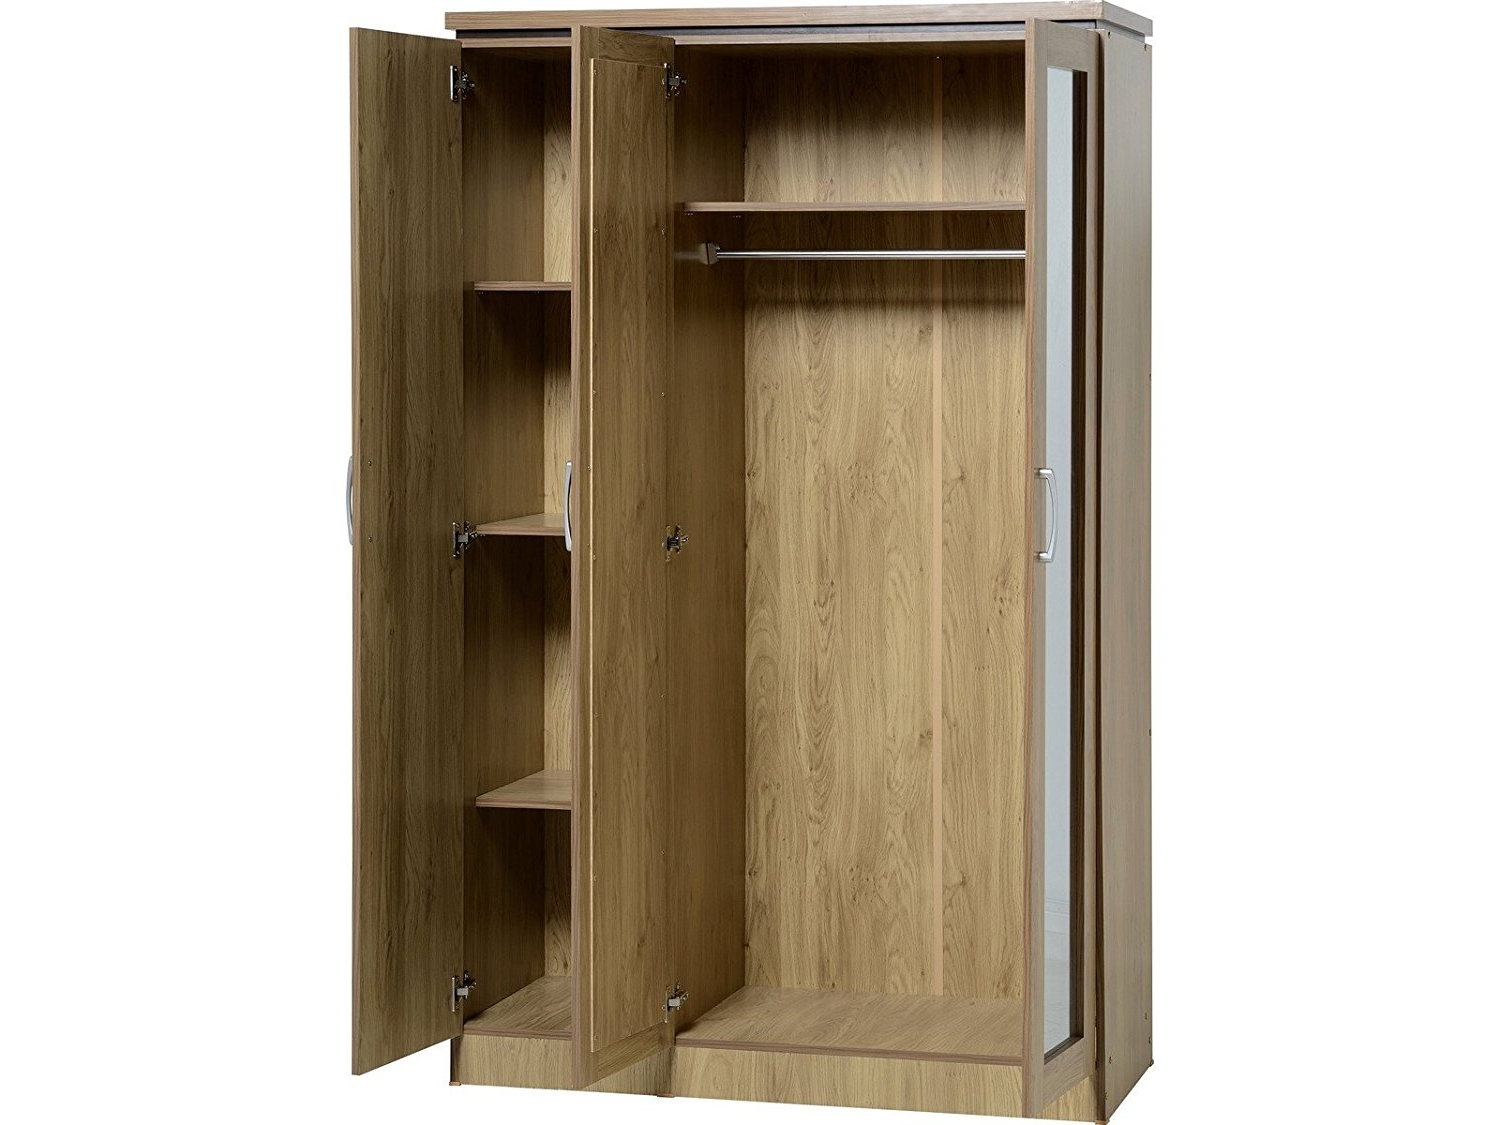 Oak 3 Door Wardrobes With Most Up To Date Seconique Charles 3 Door Wardrobe With Mirrors – New All Hanging (View 10 of 15)